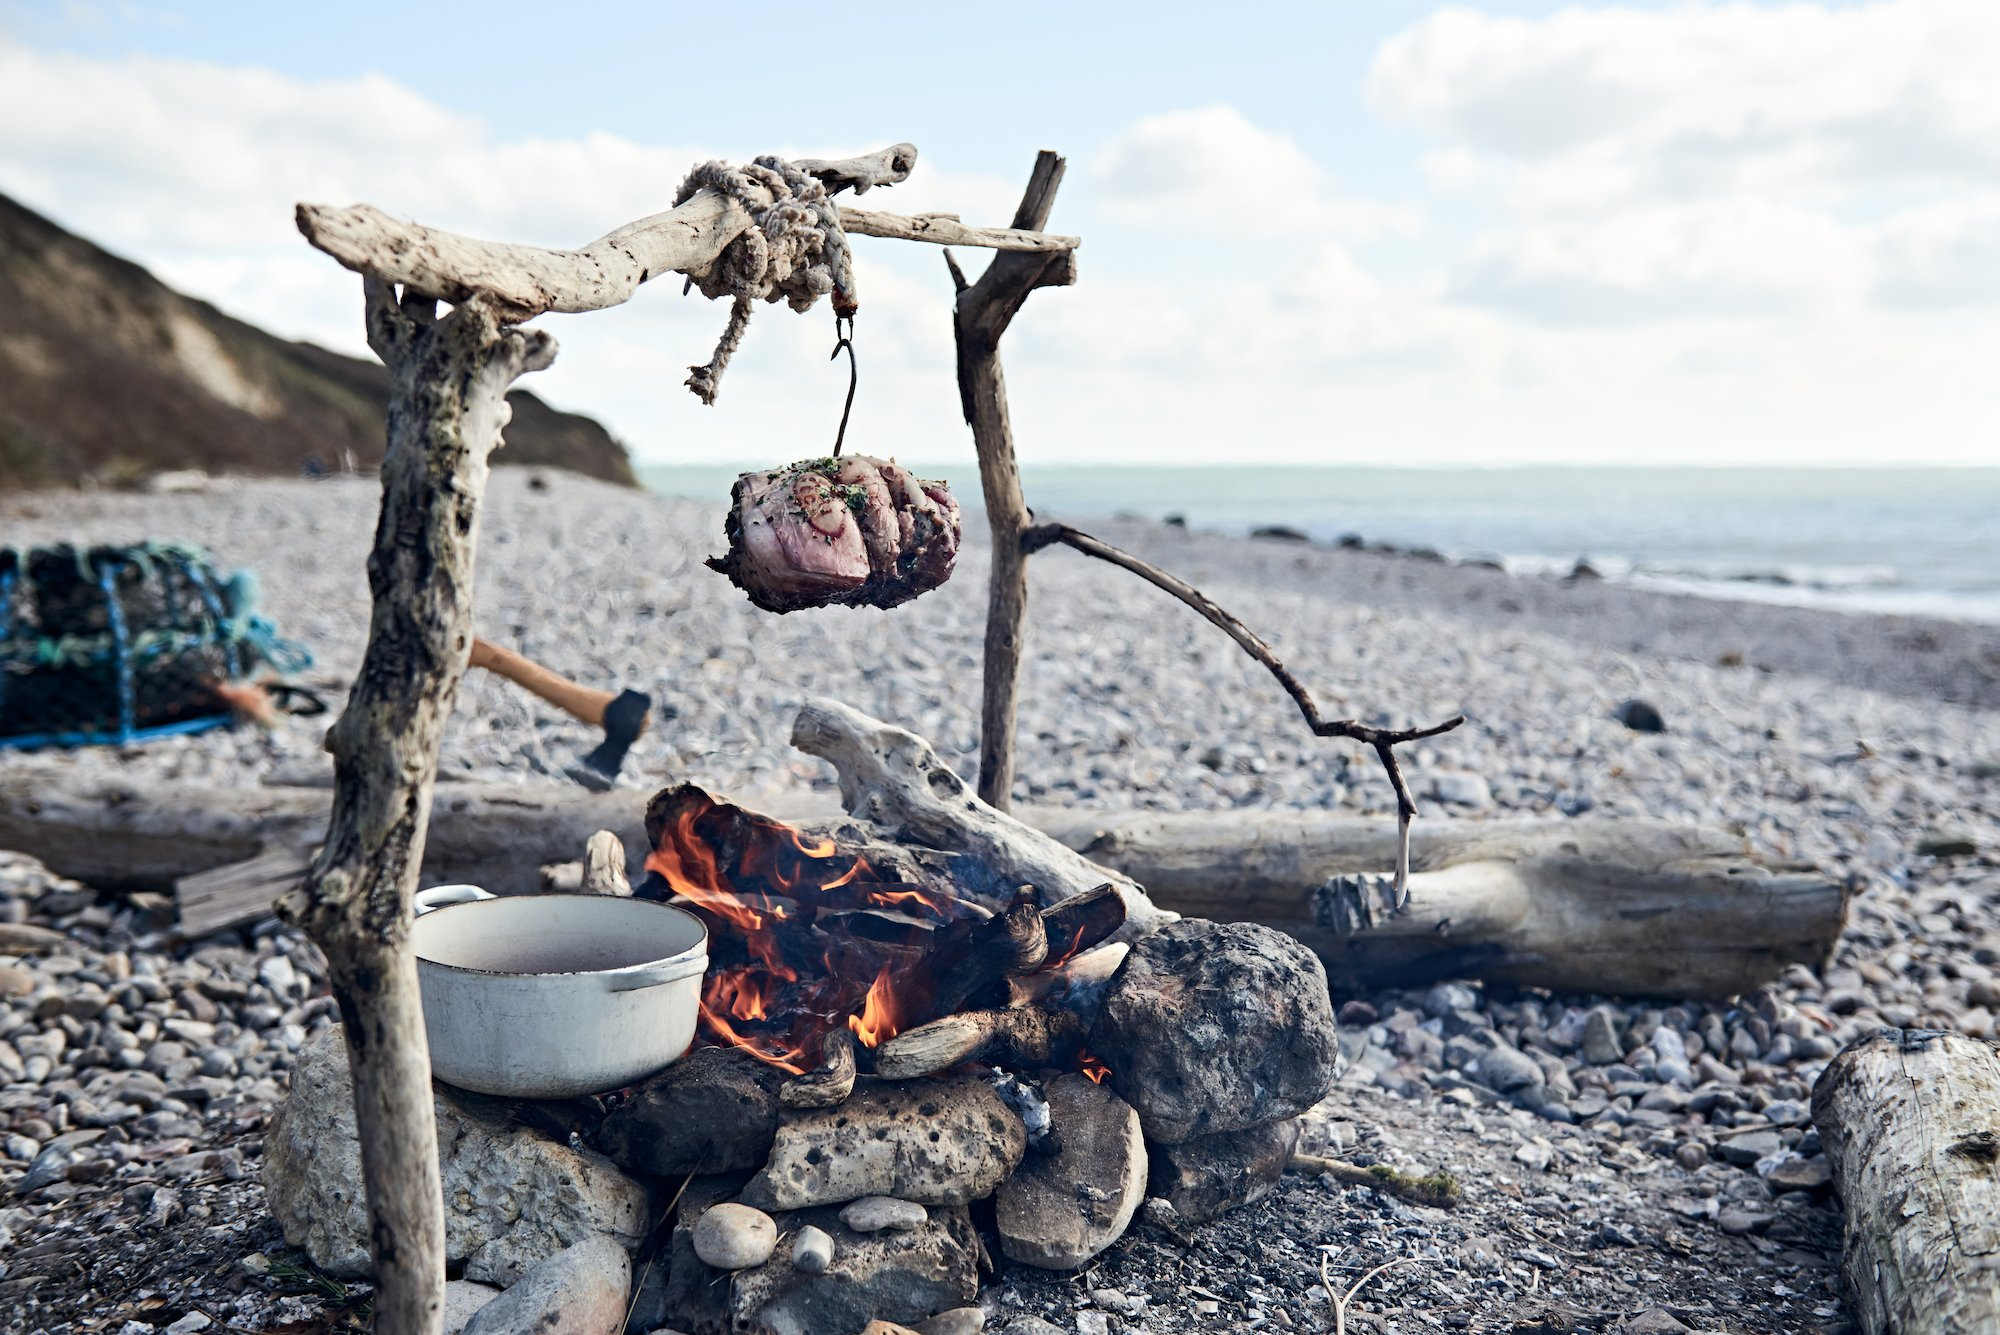 Joint cooking on pebble beach